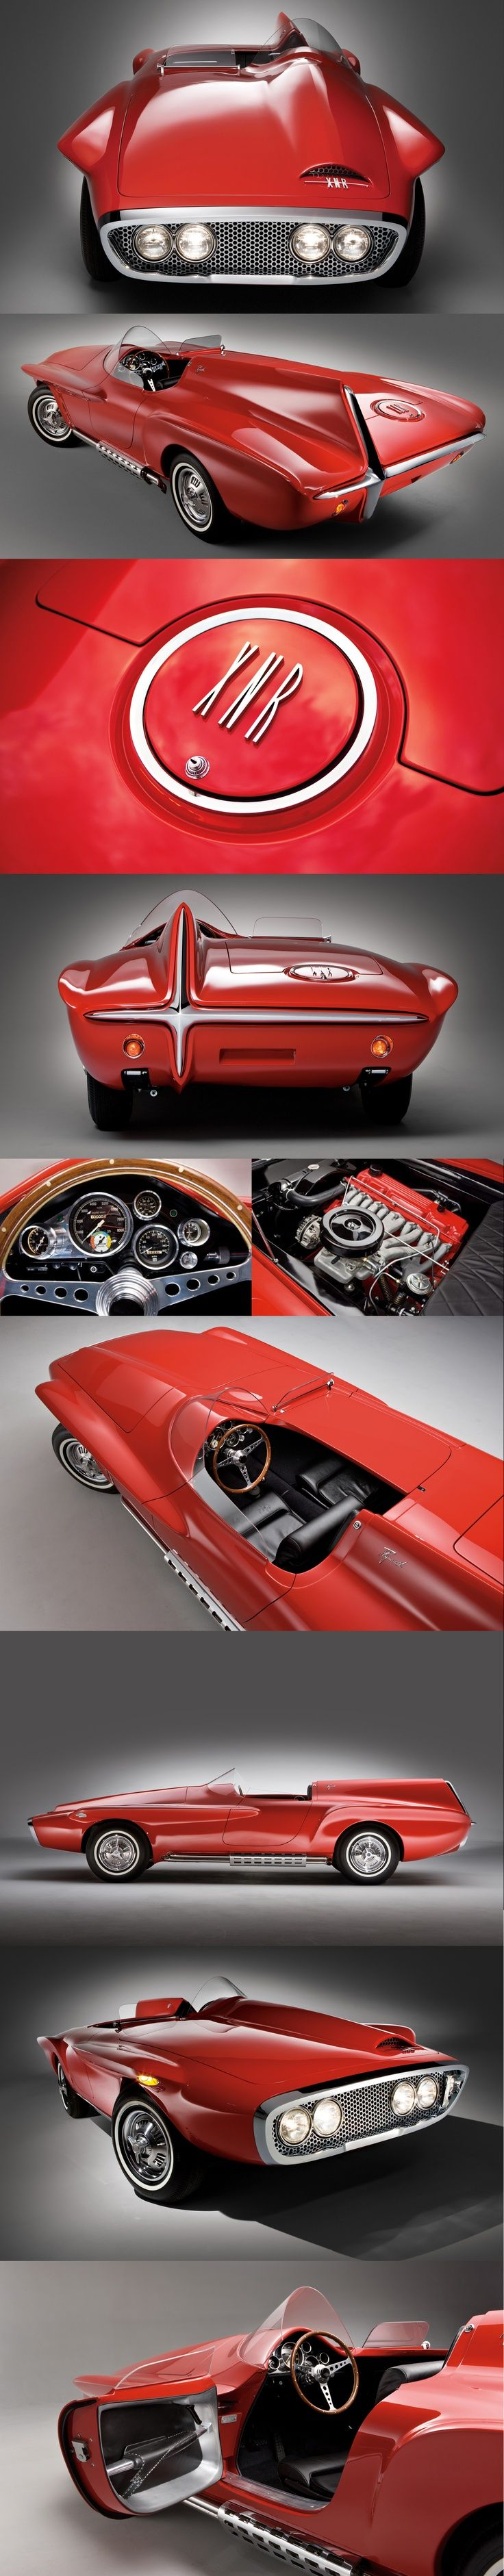 1226 best cool cars images on Pinterest